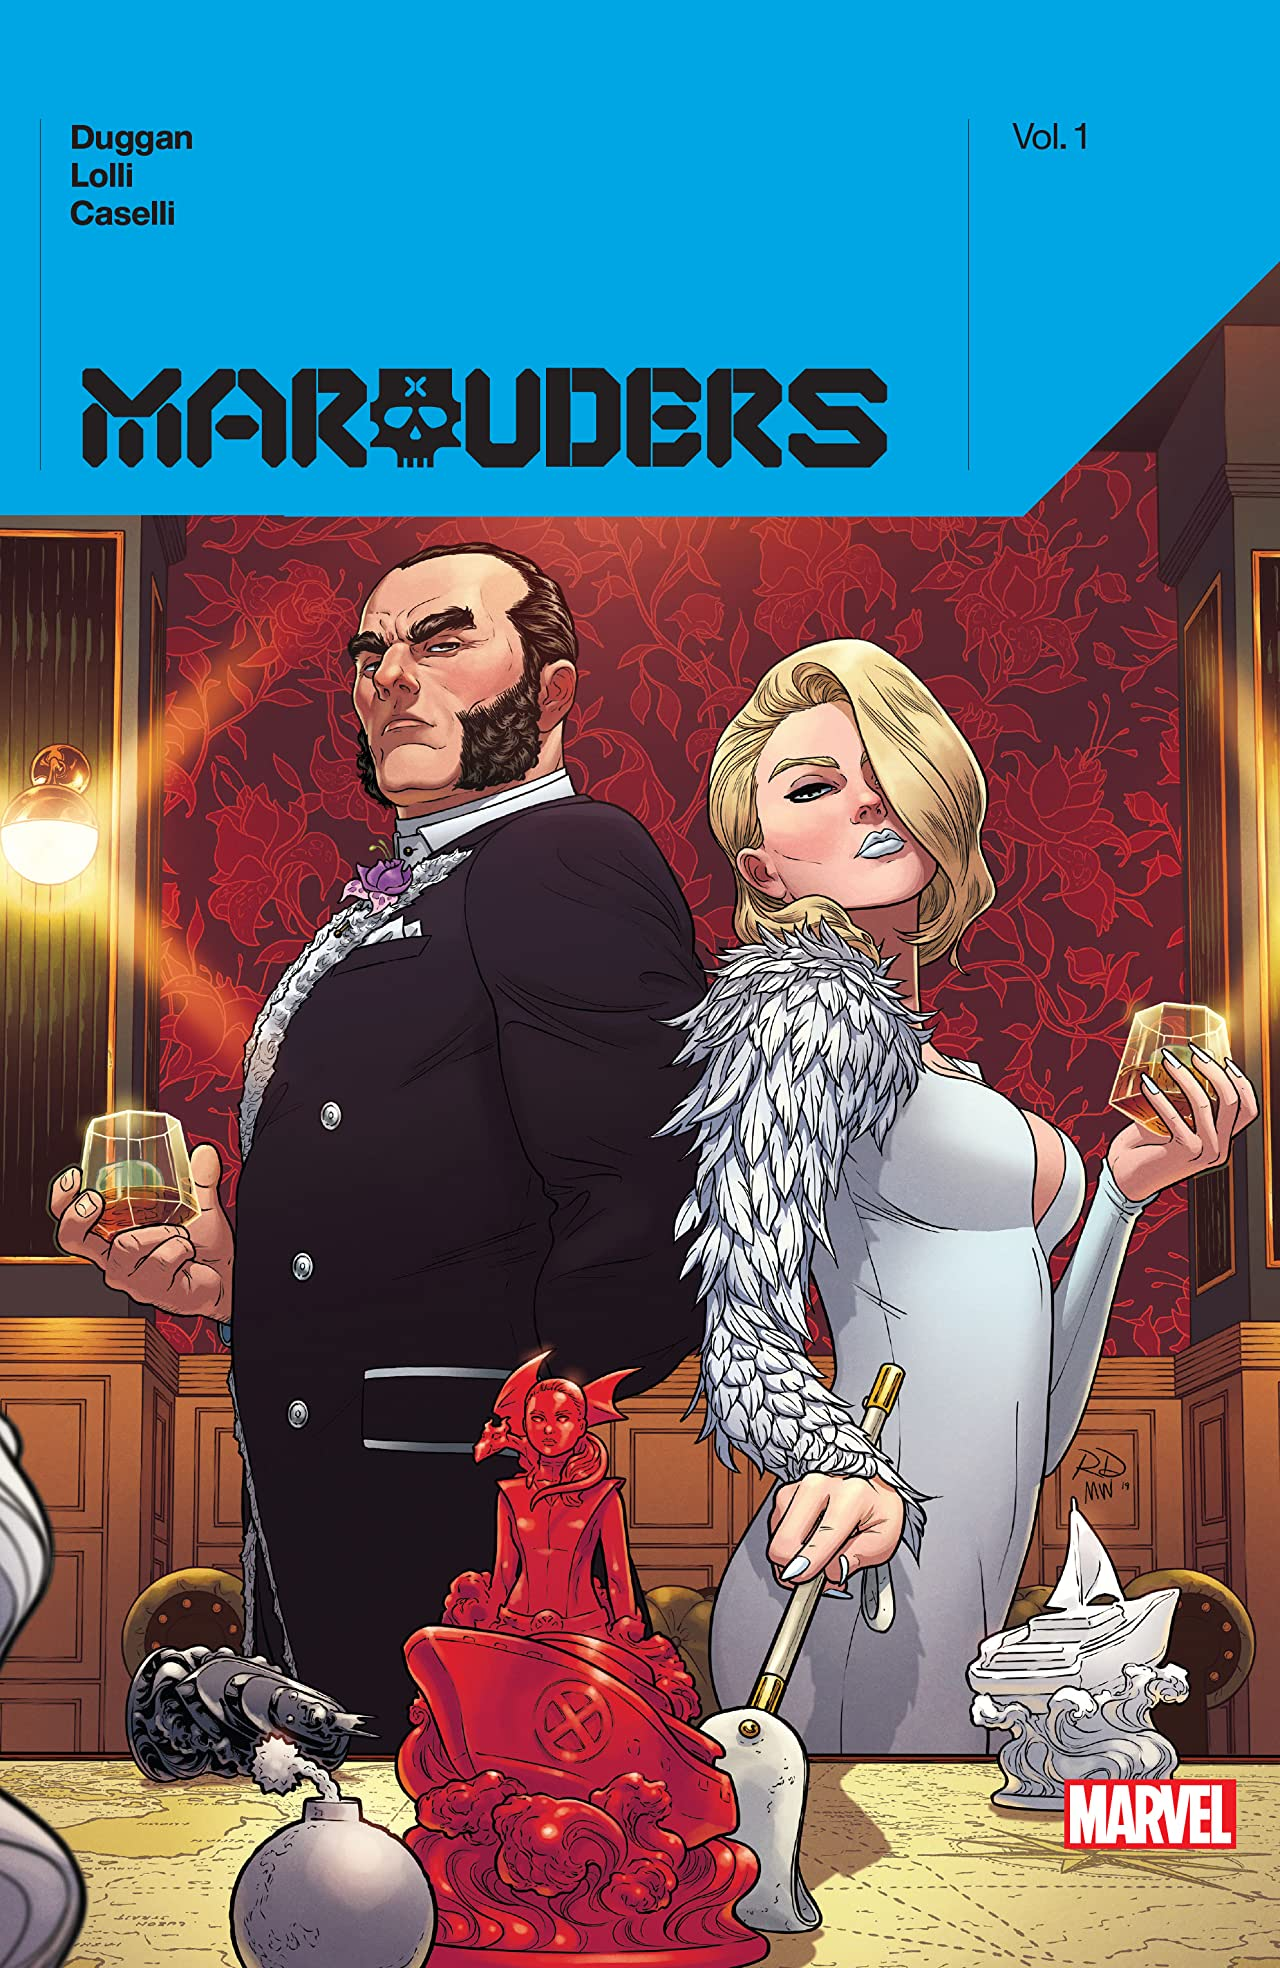 Marauders By Gerry Duggan Vol. 1: Collection (Hardcover)